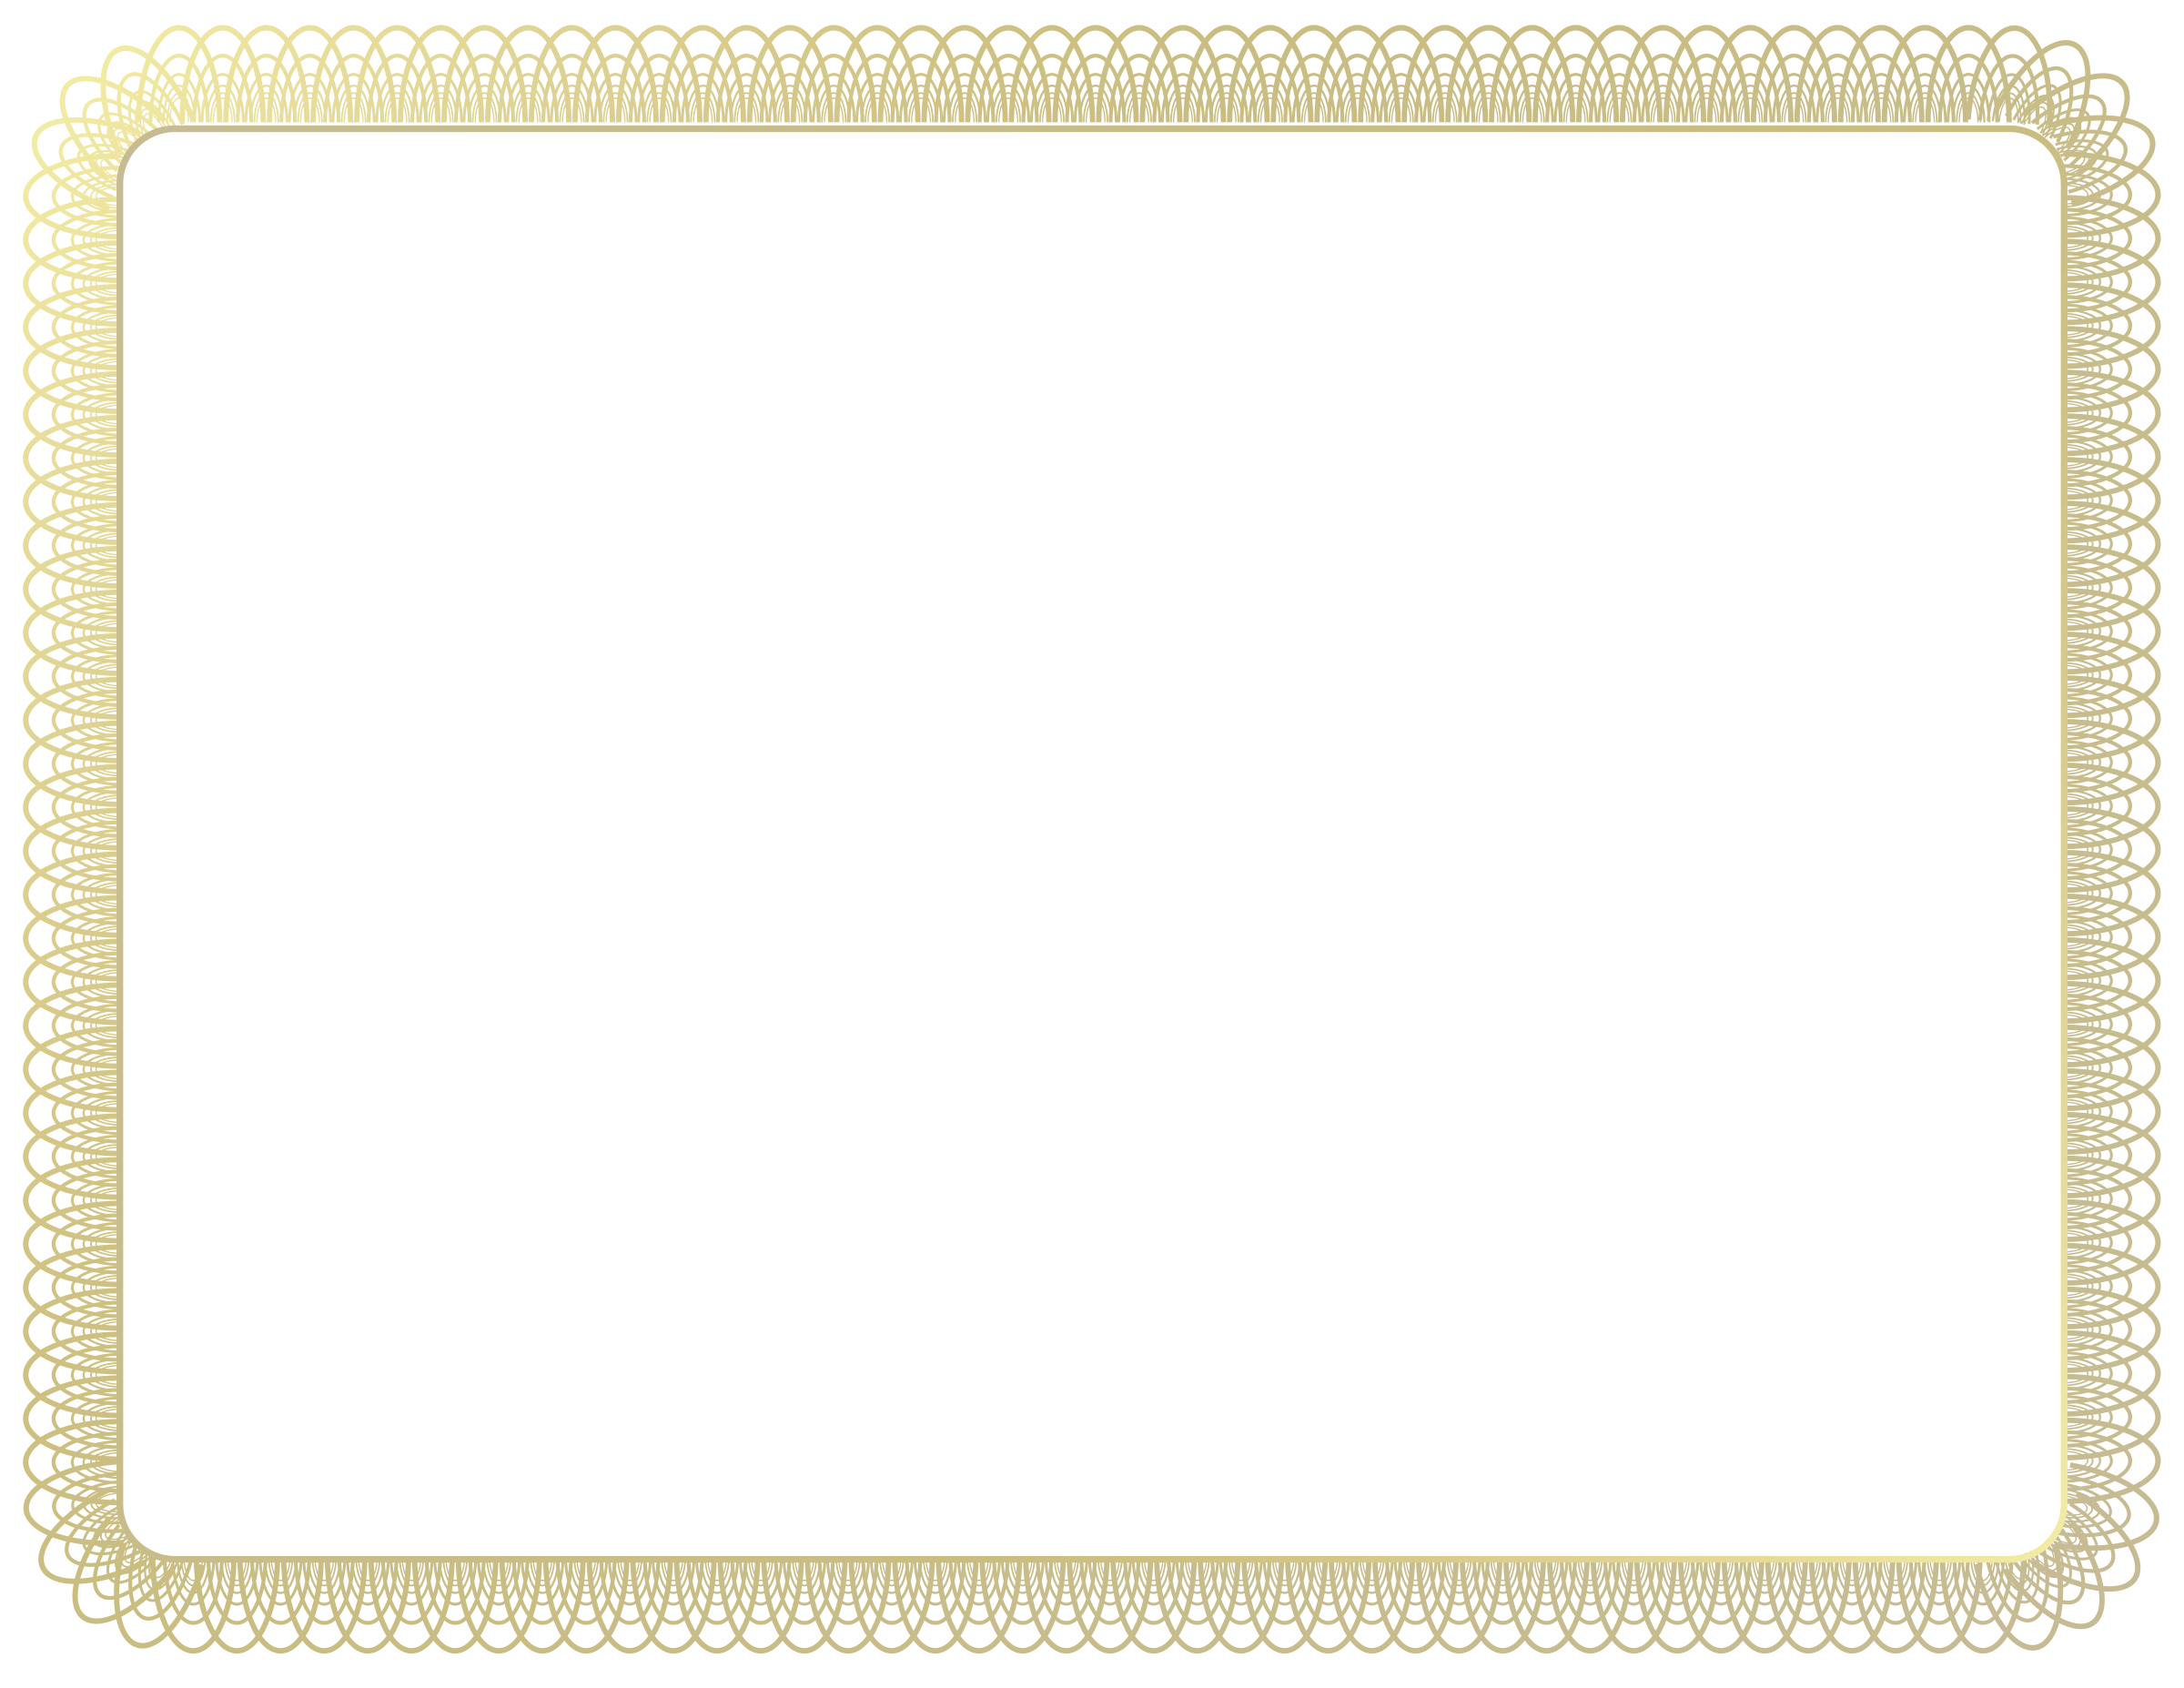 Clipart big image. Certificate border png banner royalty free download